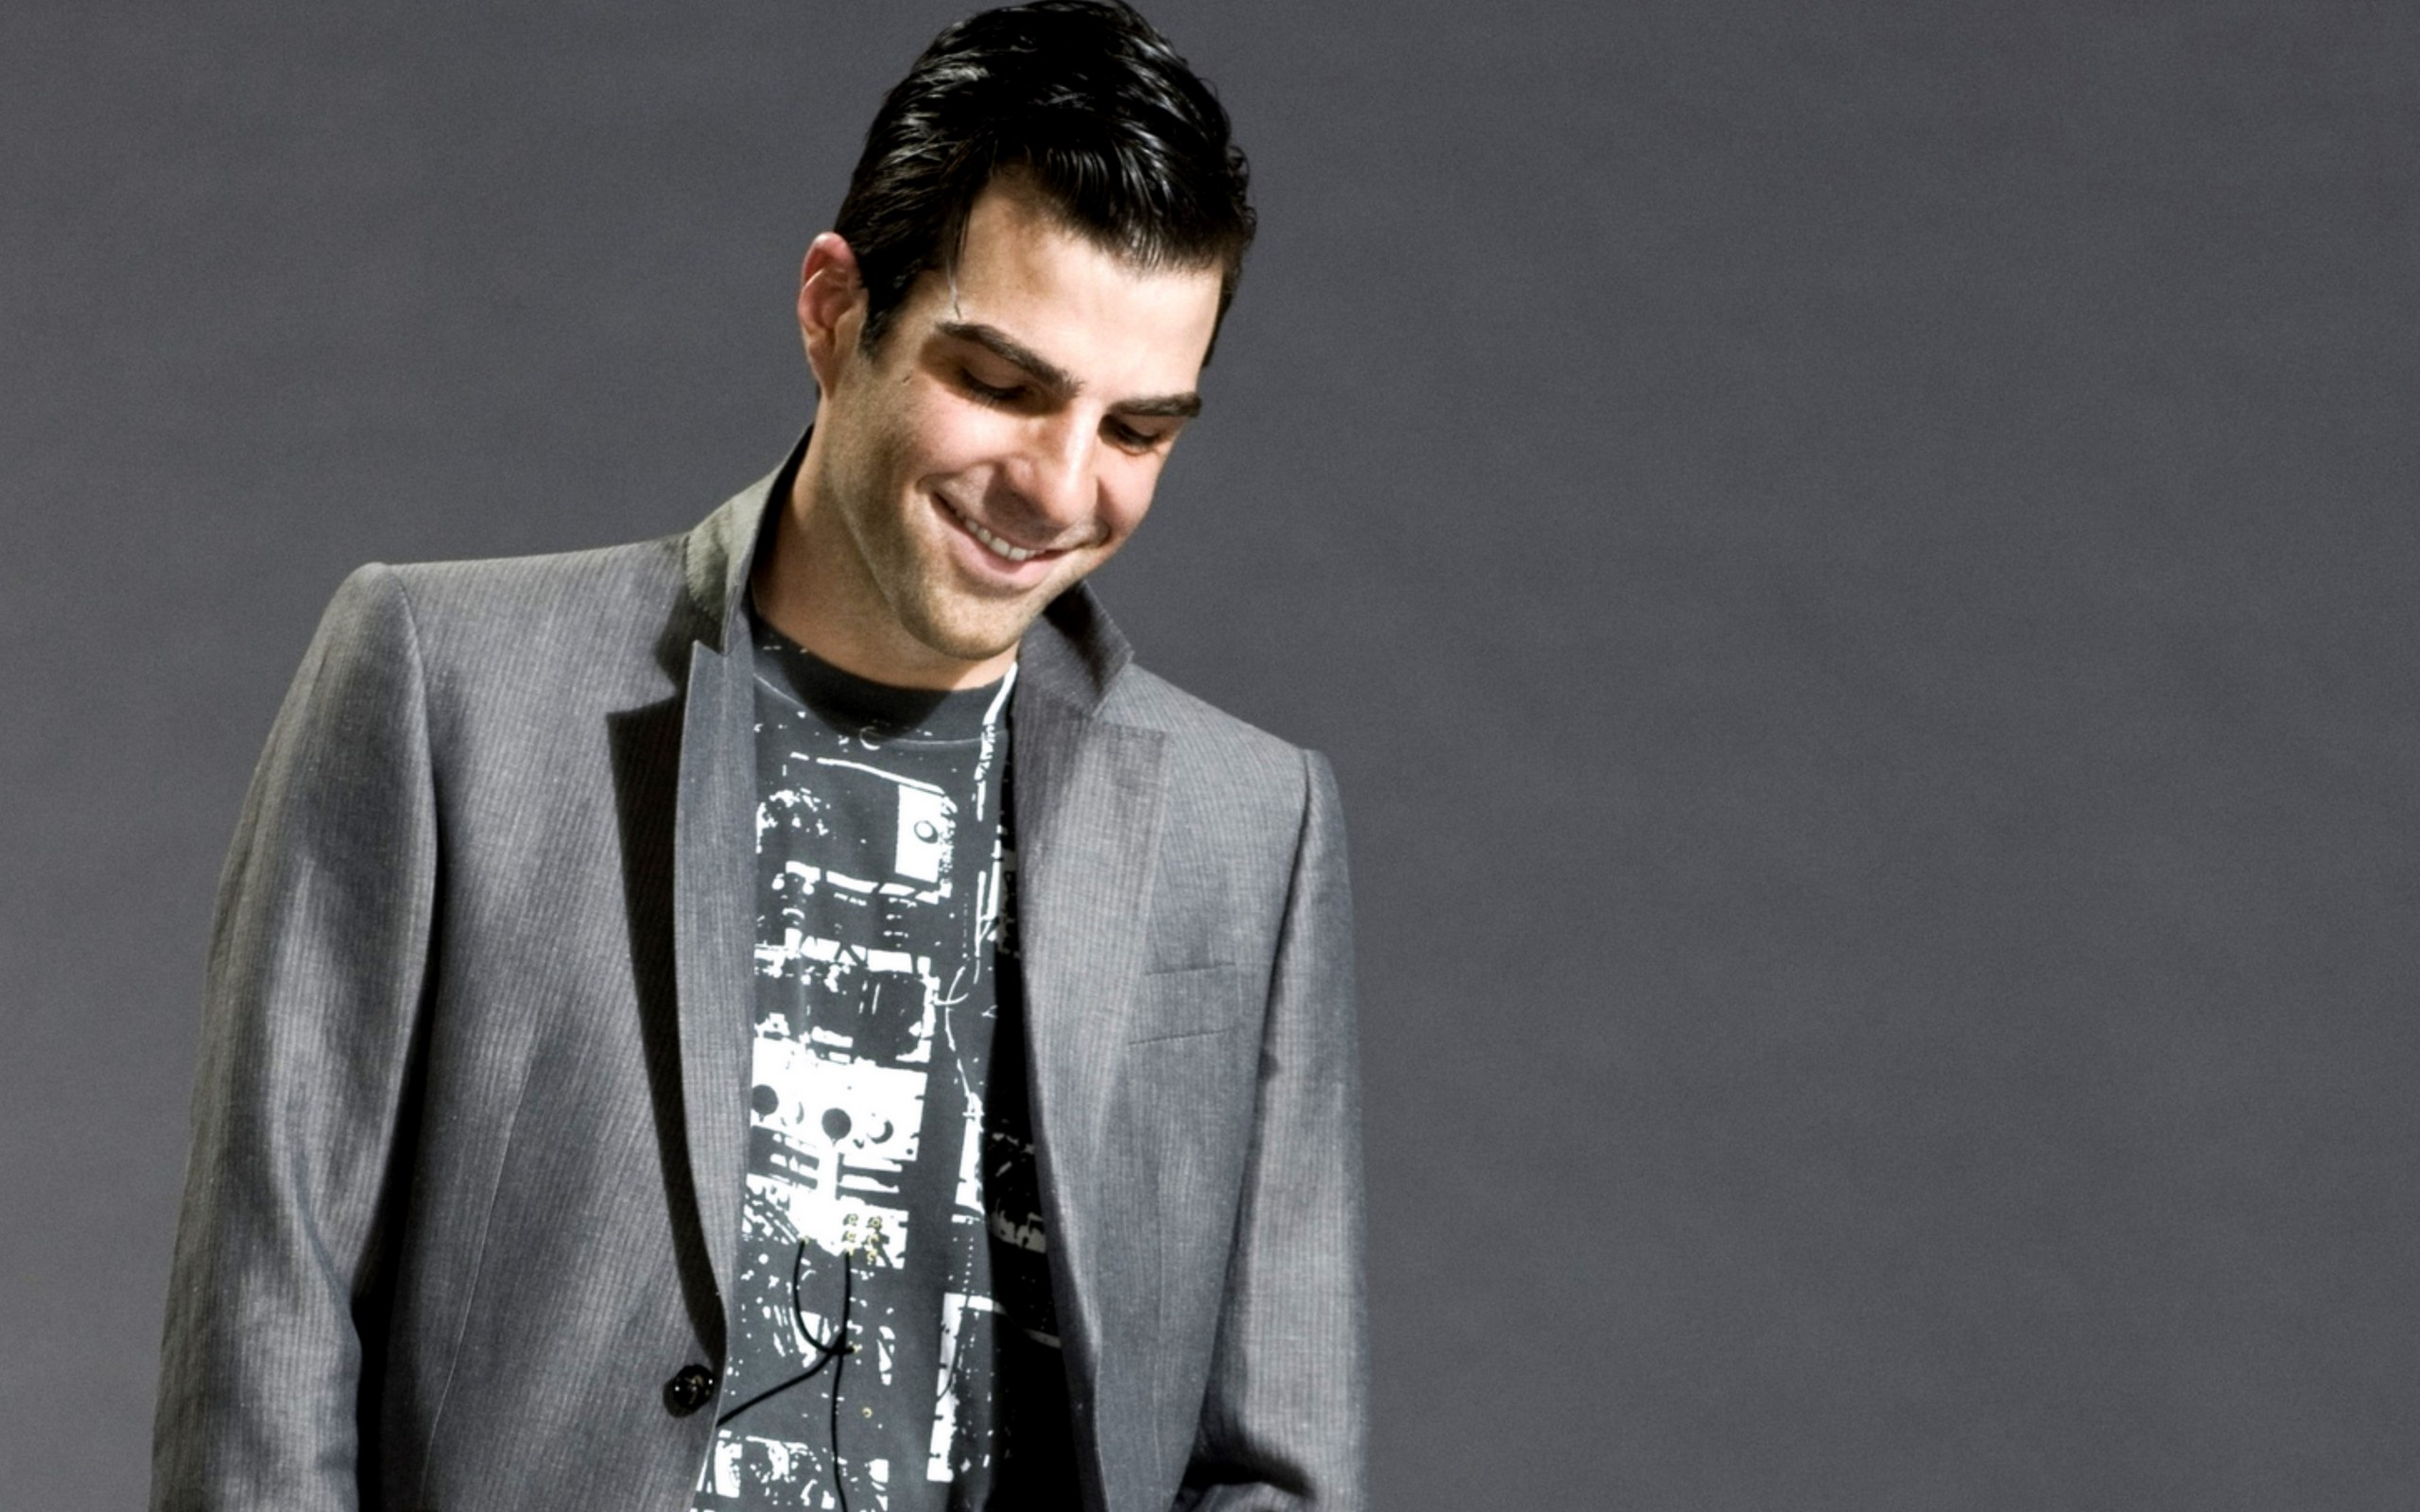 2560x1600 - Zachary Quinto Wallpapers 5